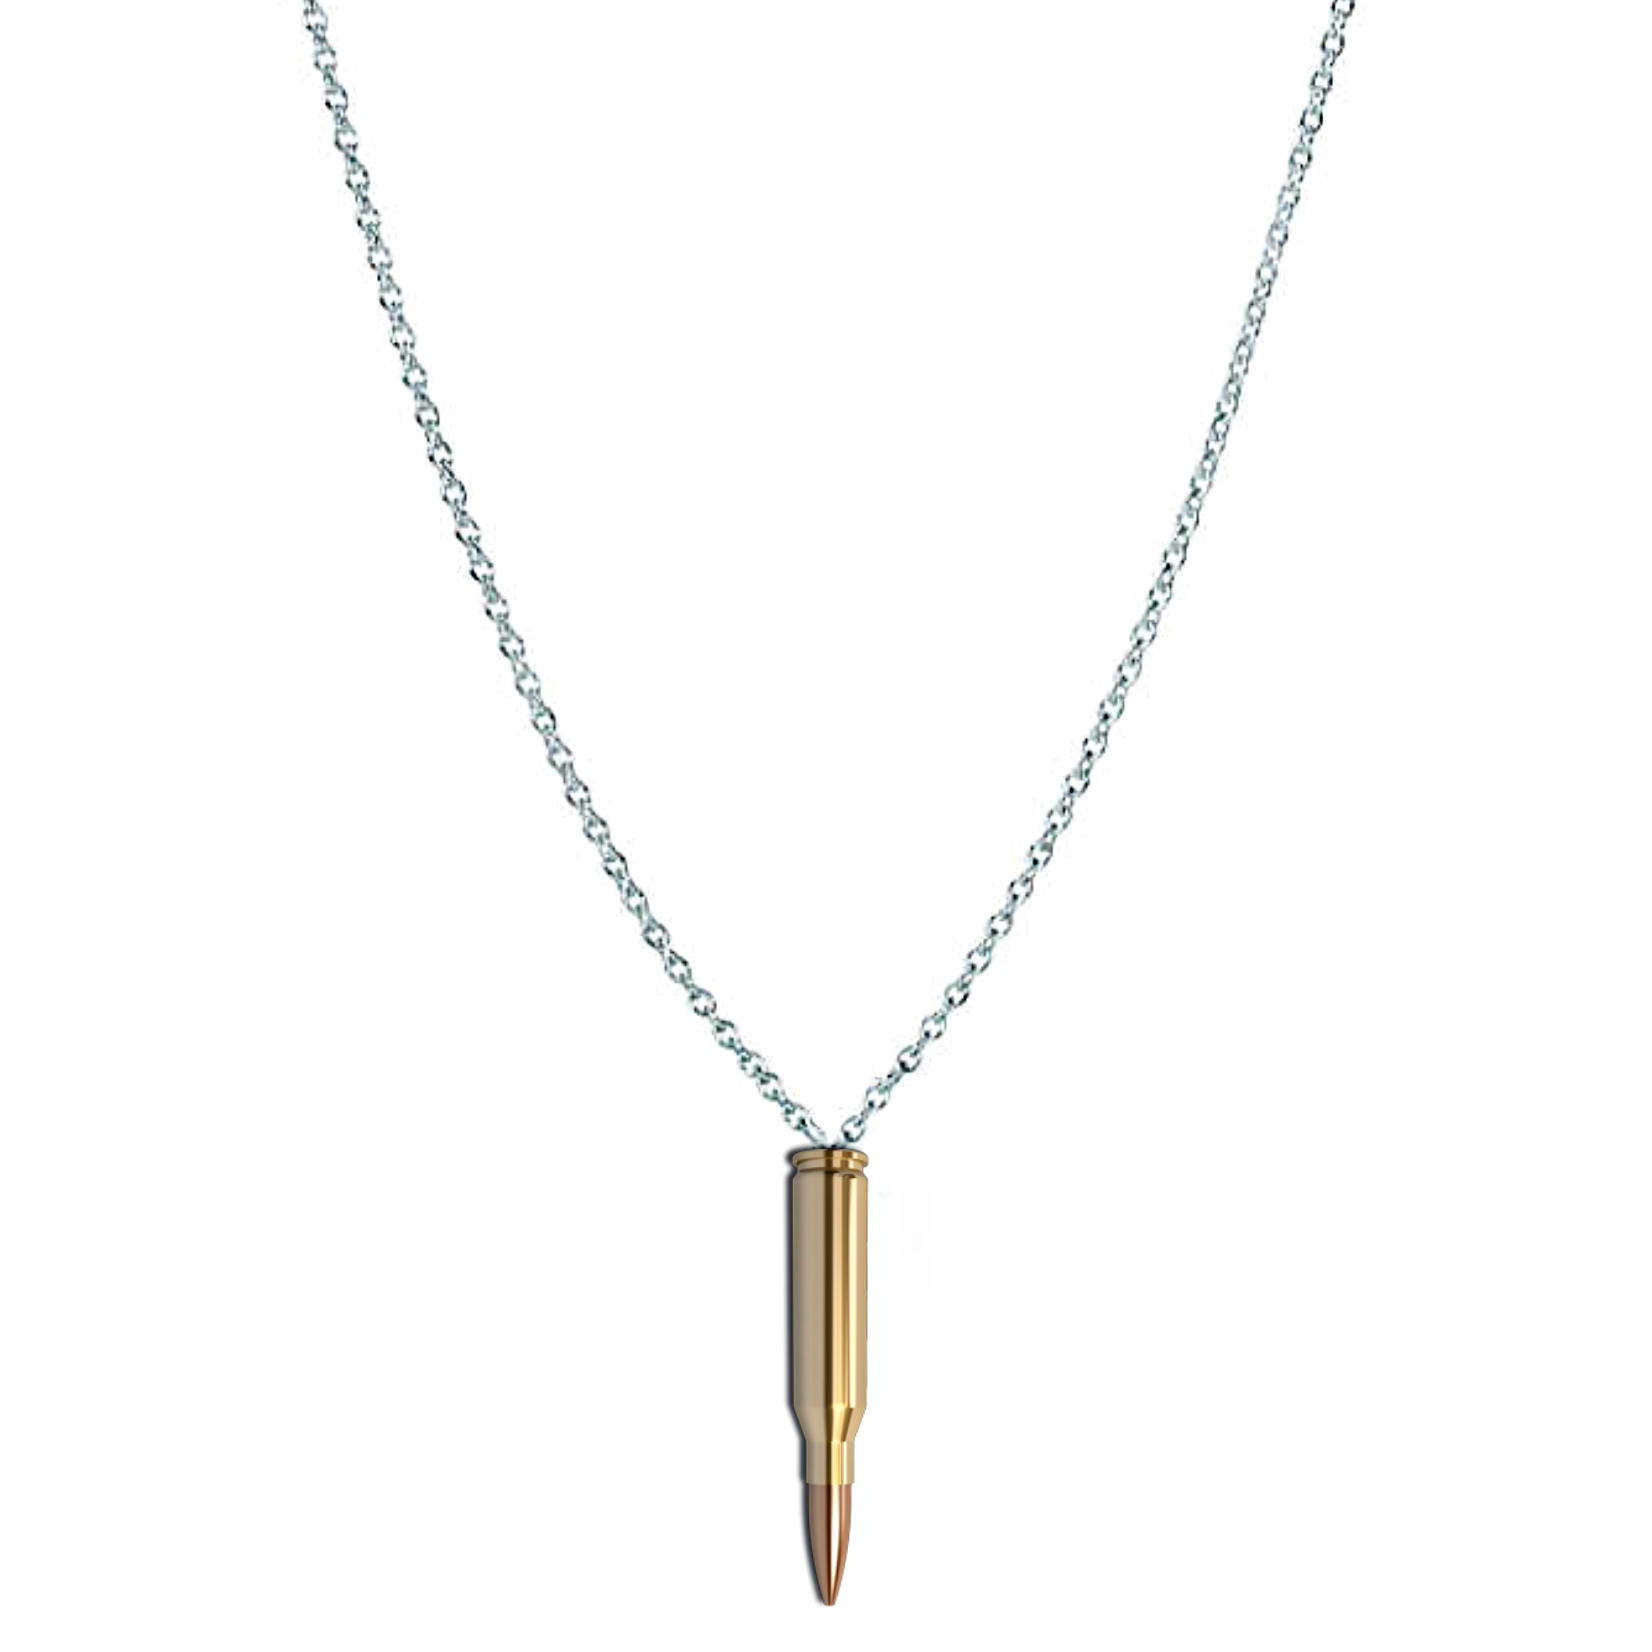 The Remington Necklace